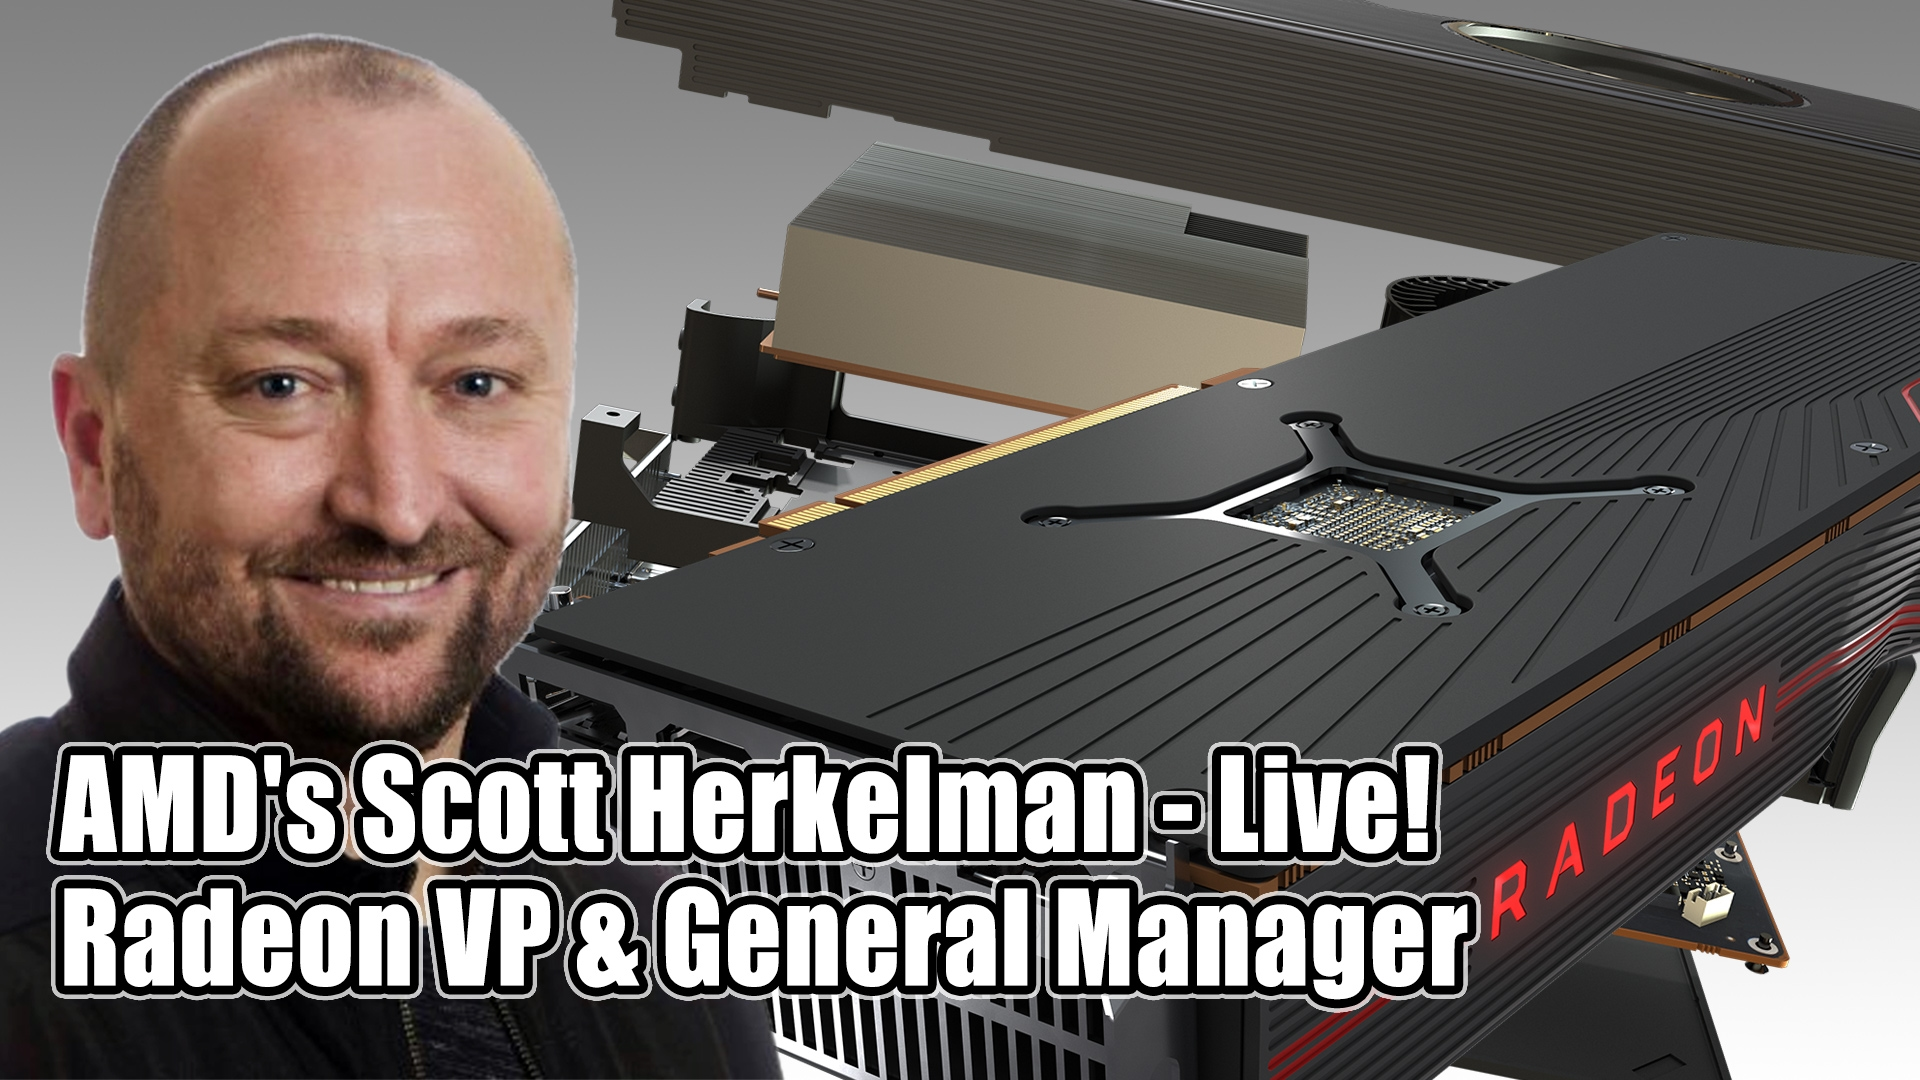 AMD Radeon VP And GM Scott Herkelman Joins Hot Hardware's 2.5 Geeks Podcast TODAY At 4PM ET!